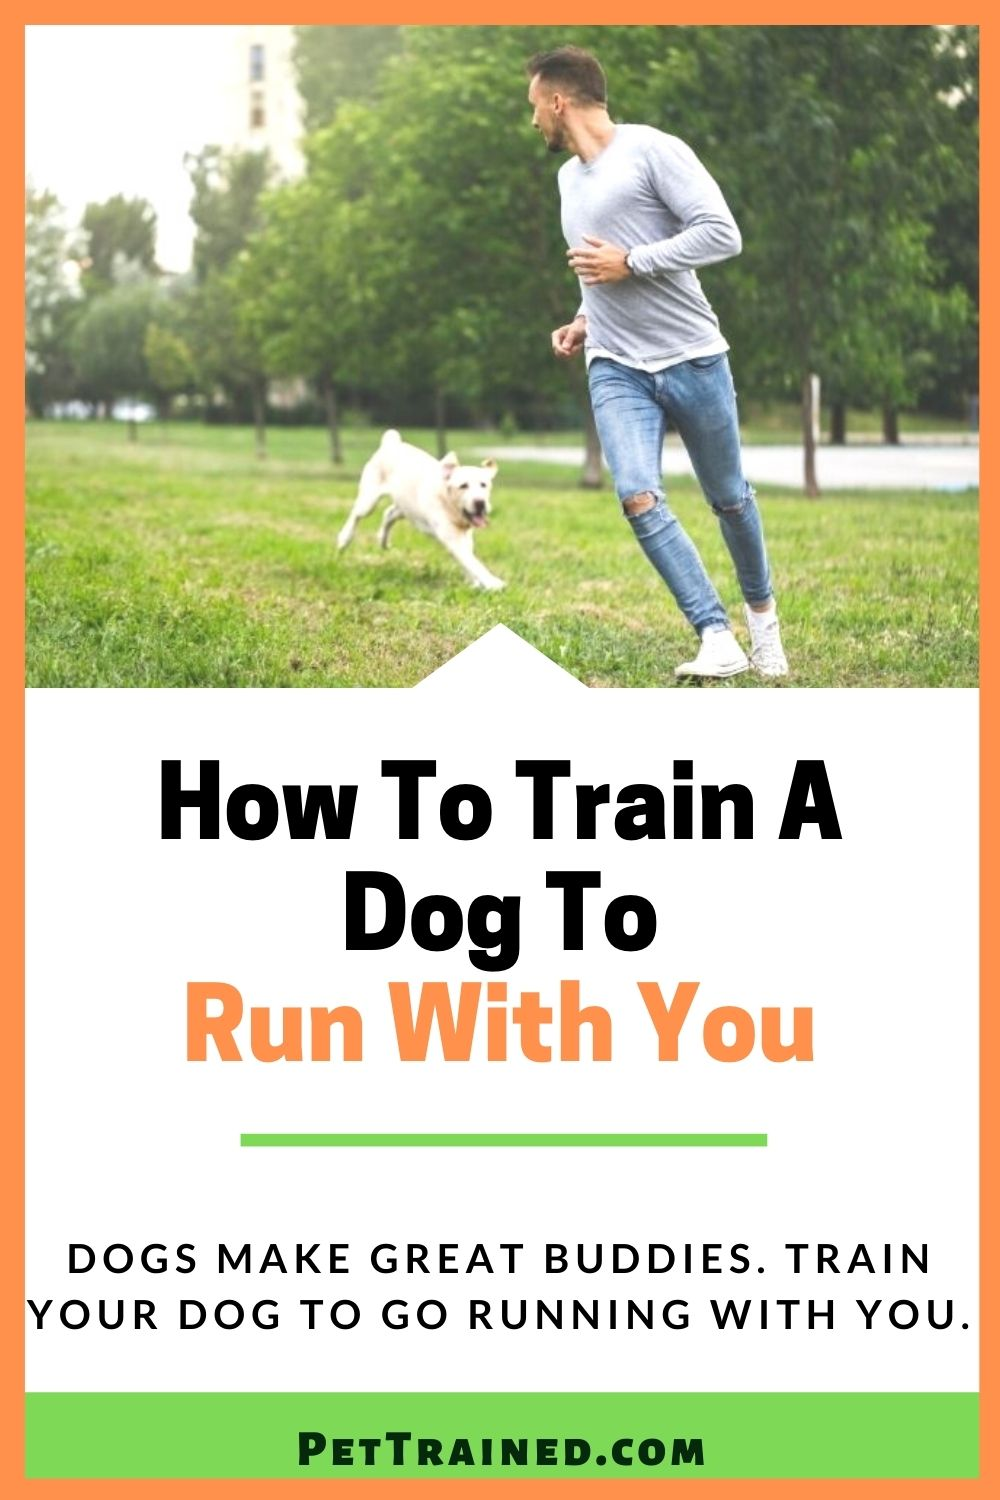 How to exercise your dog by running